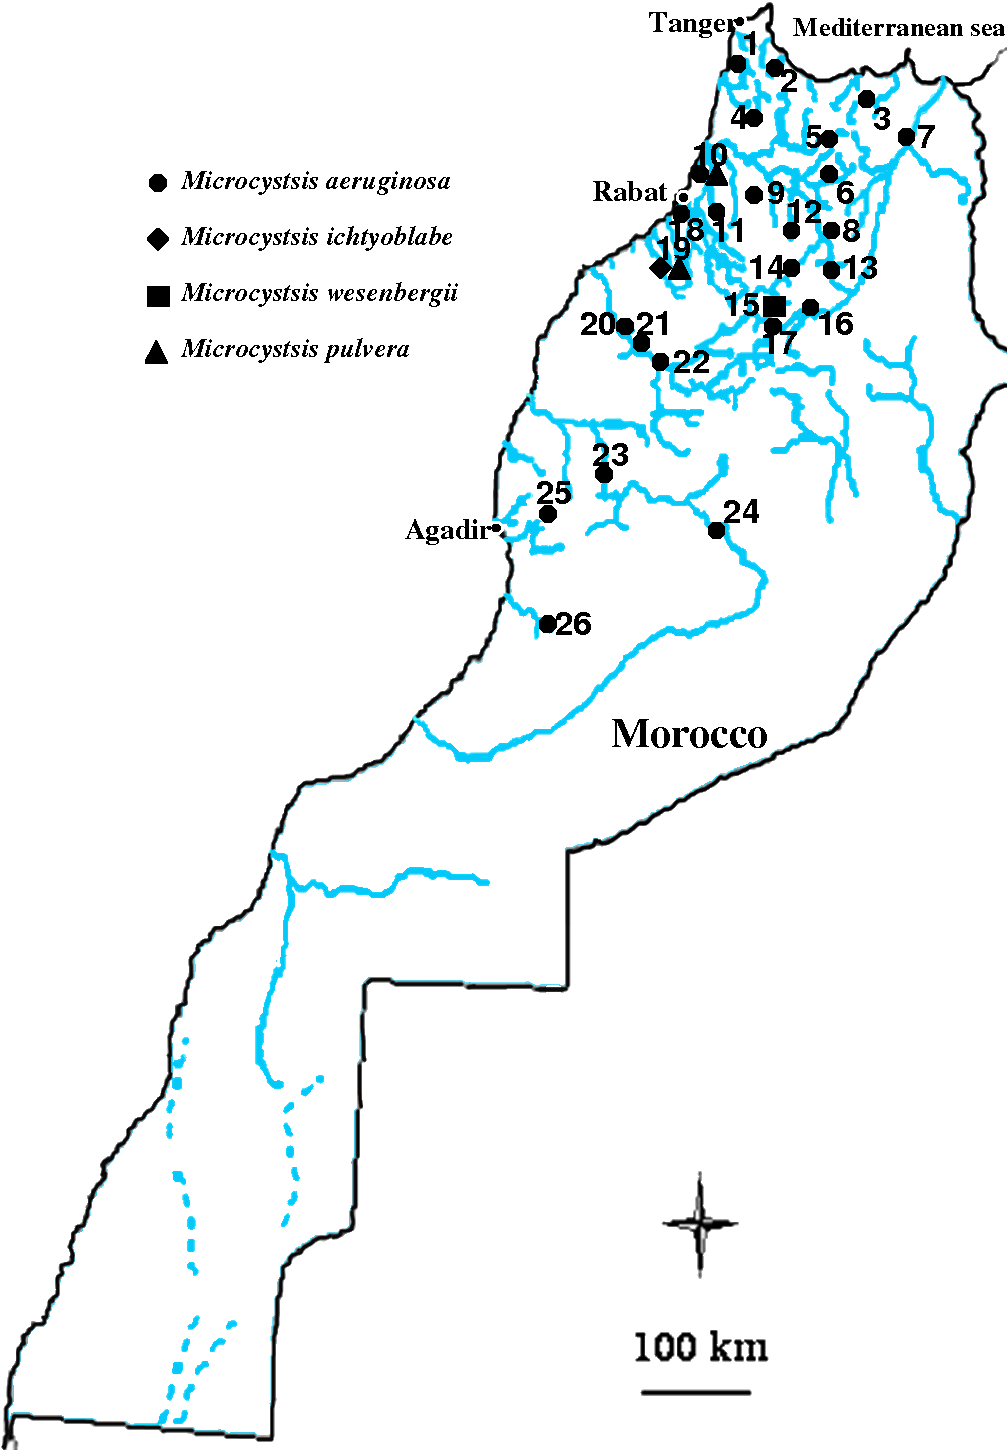 Geographic localisation of some Moroccan reservoirs, natural lakes and ponds where Microcystis strains have been inventoried.